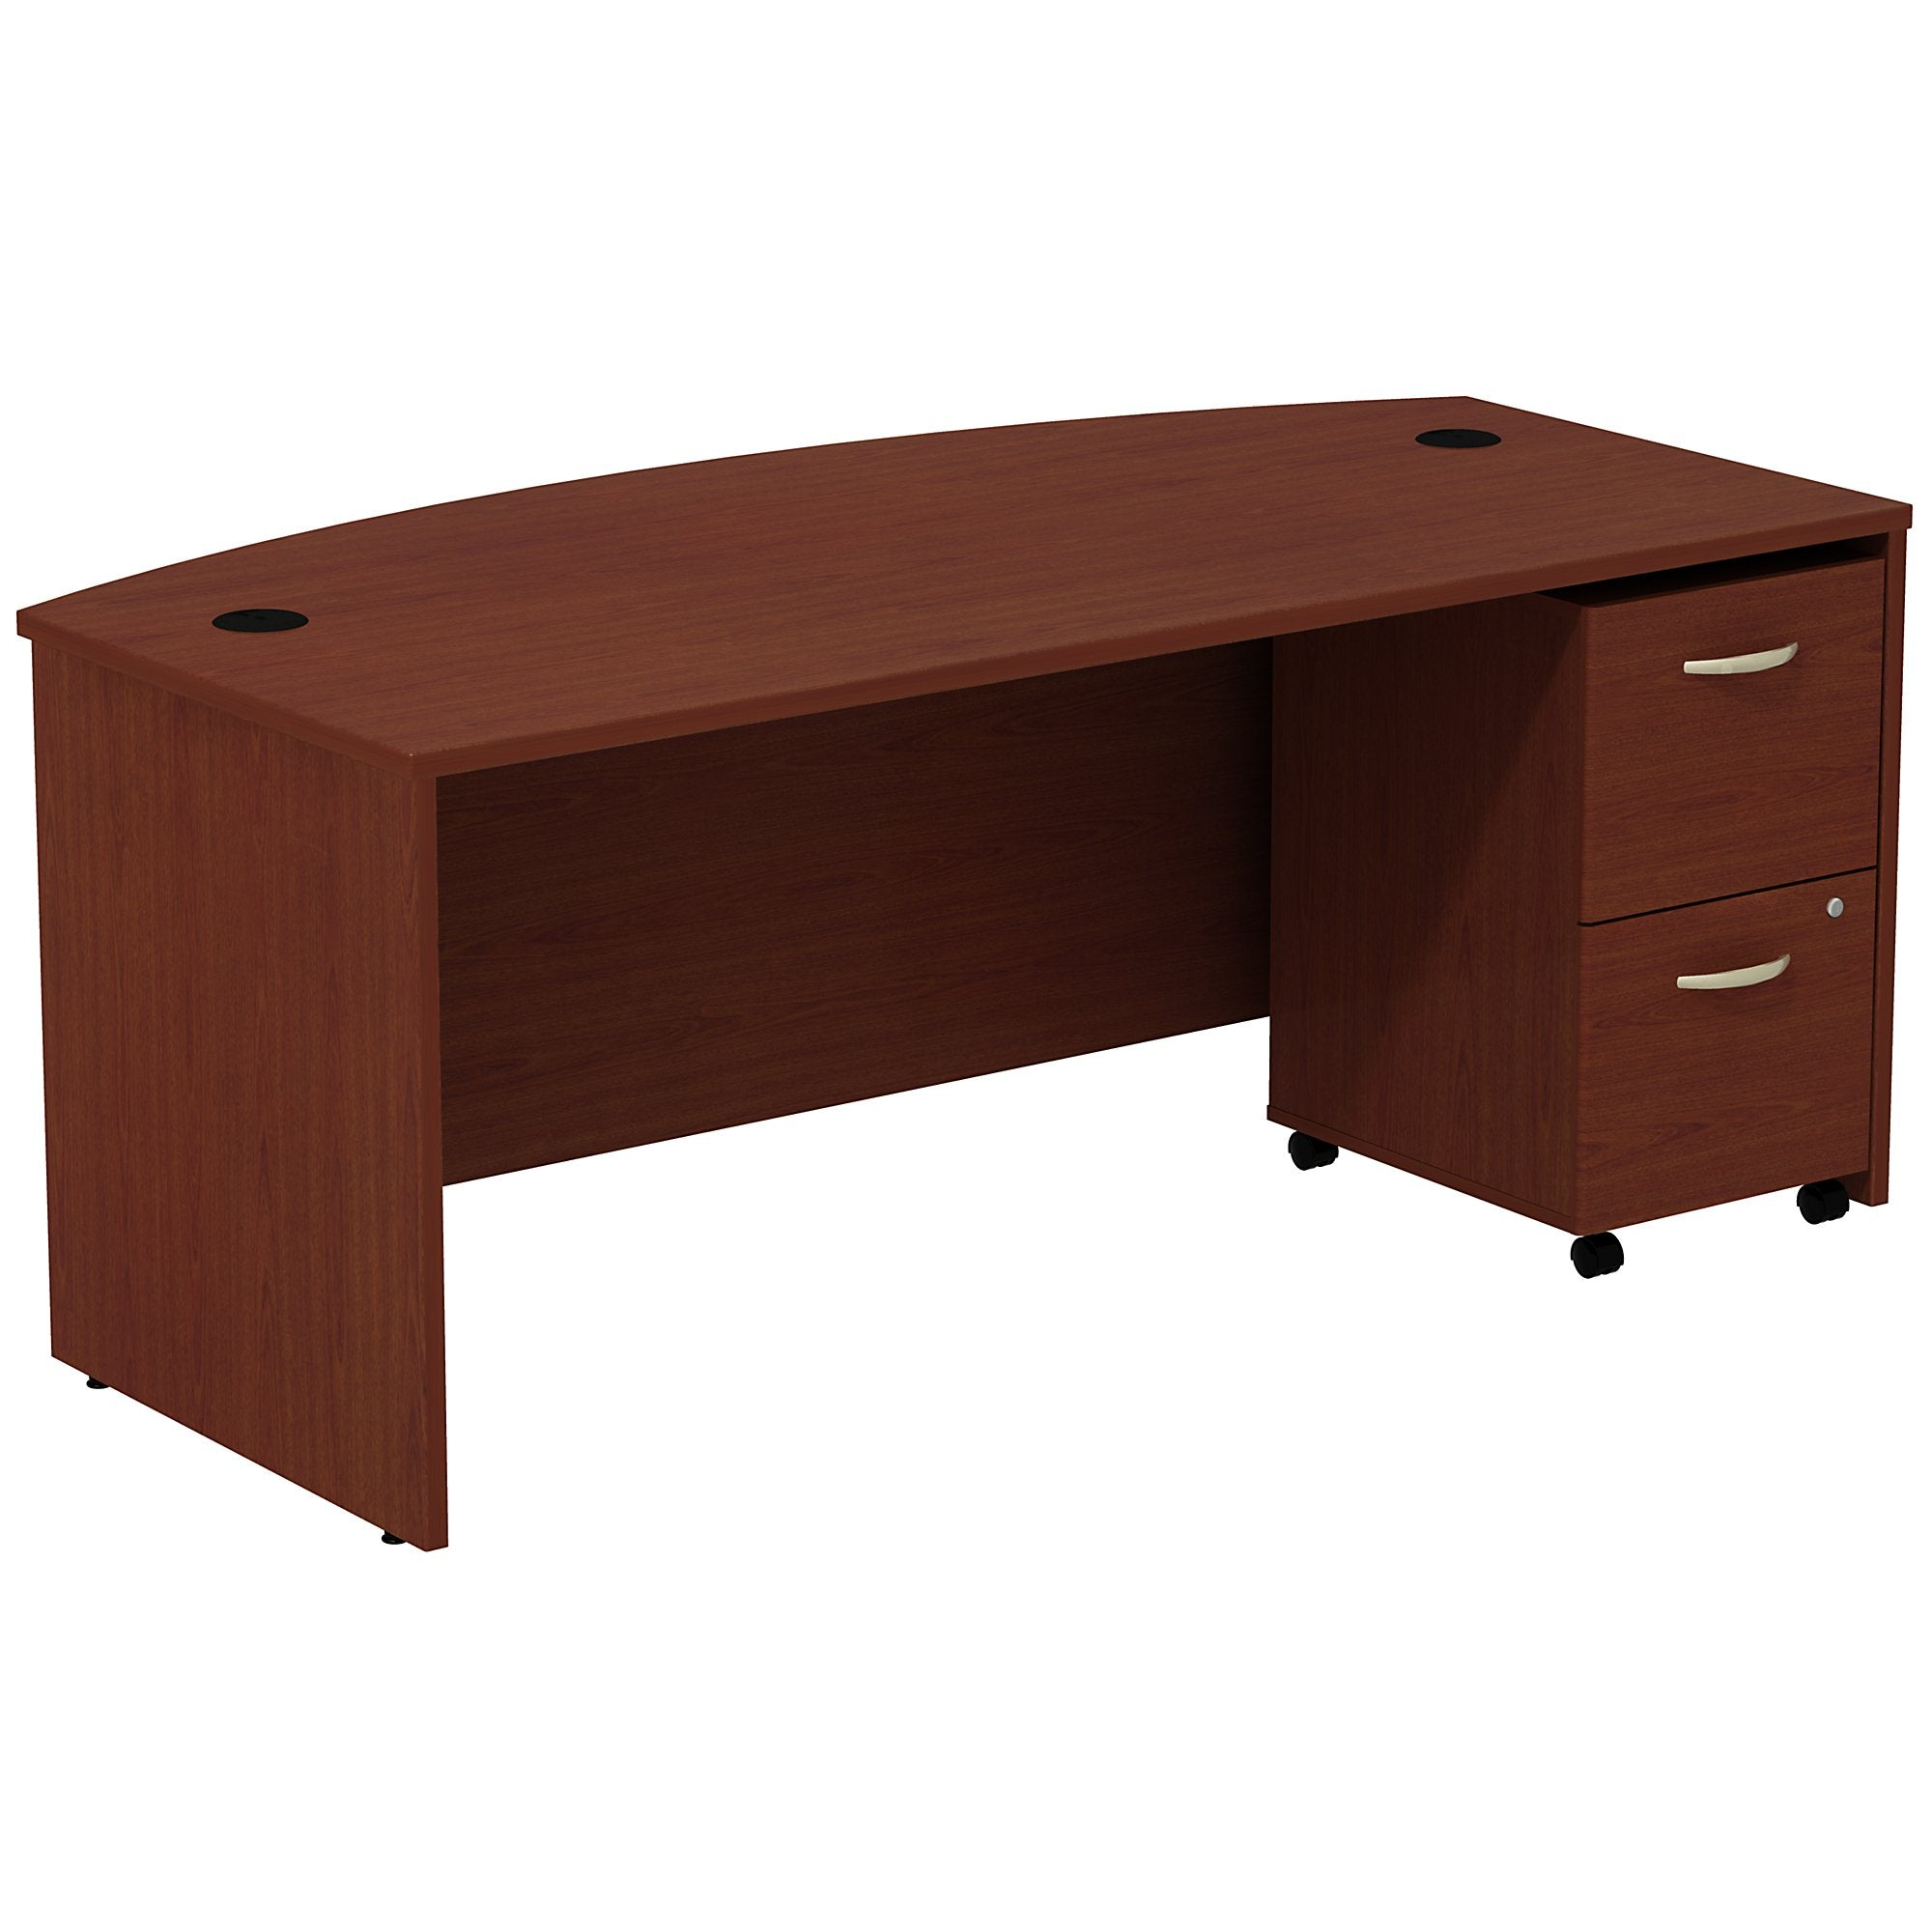 Bush Business Furniture Series C Bow Front Desk with 2 Drawer Mobile Pedestal | Mahogany